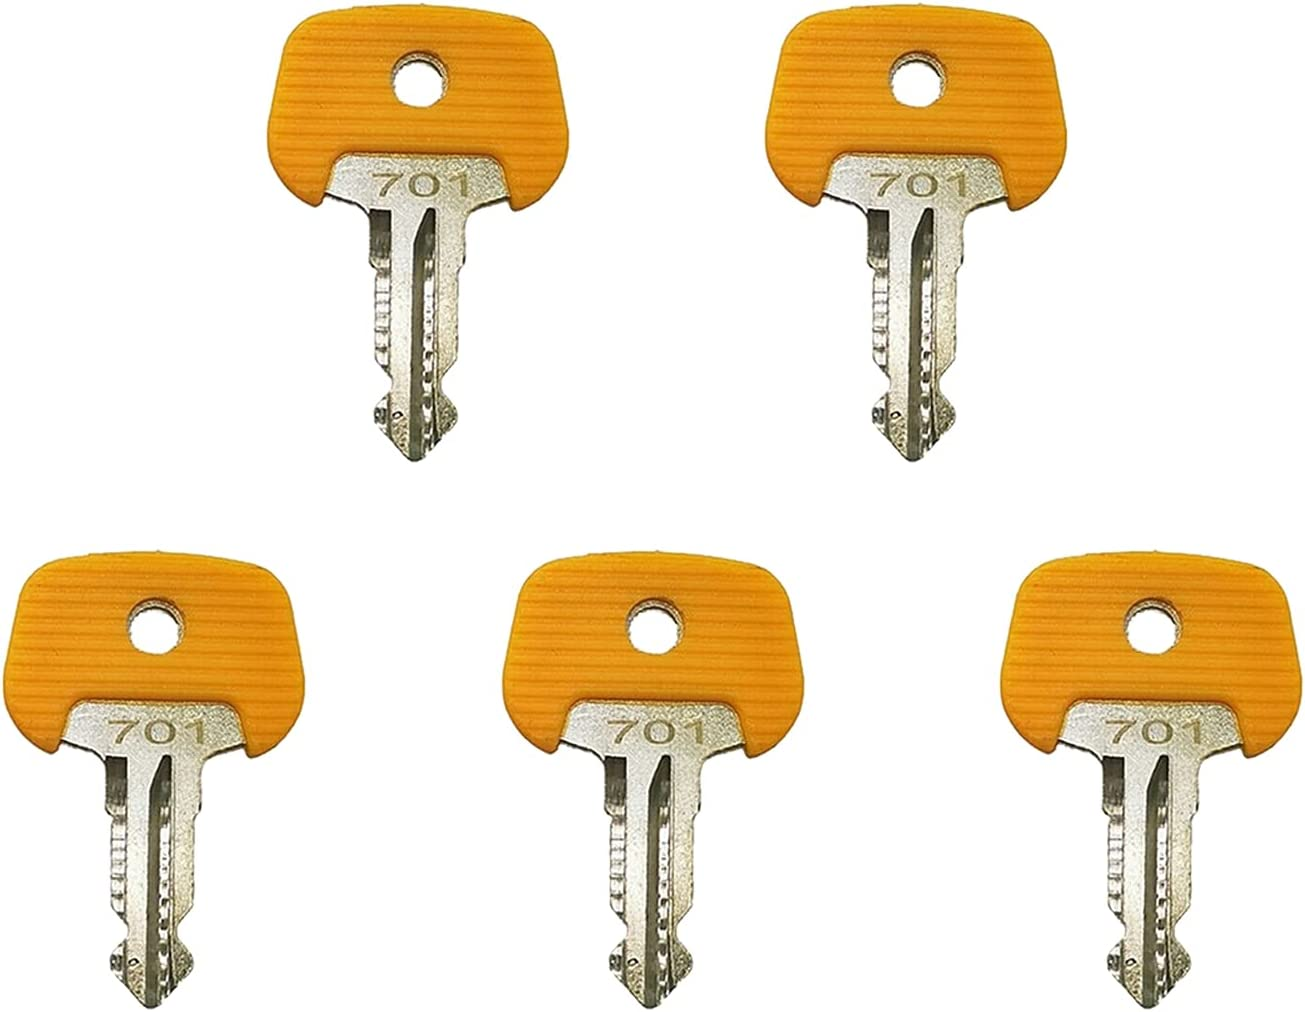 Weelparz Austin Mall 701 28520480 5pcs Ignition Austin Mall Key with Compatible Junghein